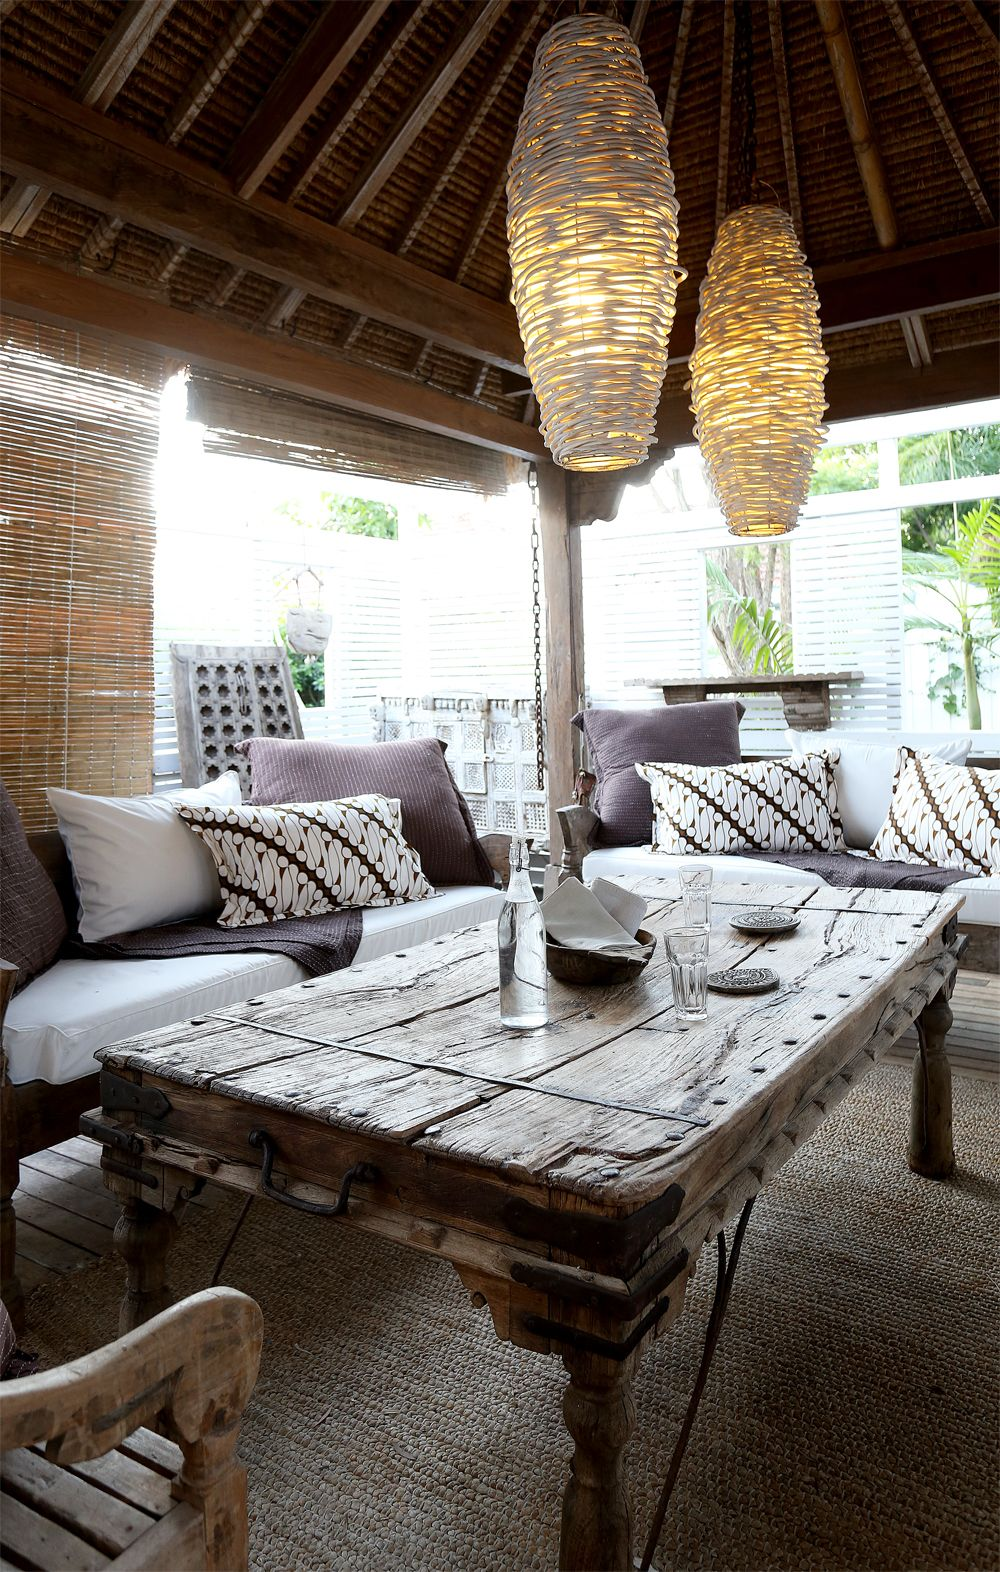 Hauveli house byron bay antique furniture and earthy